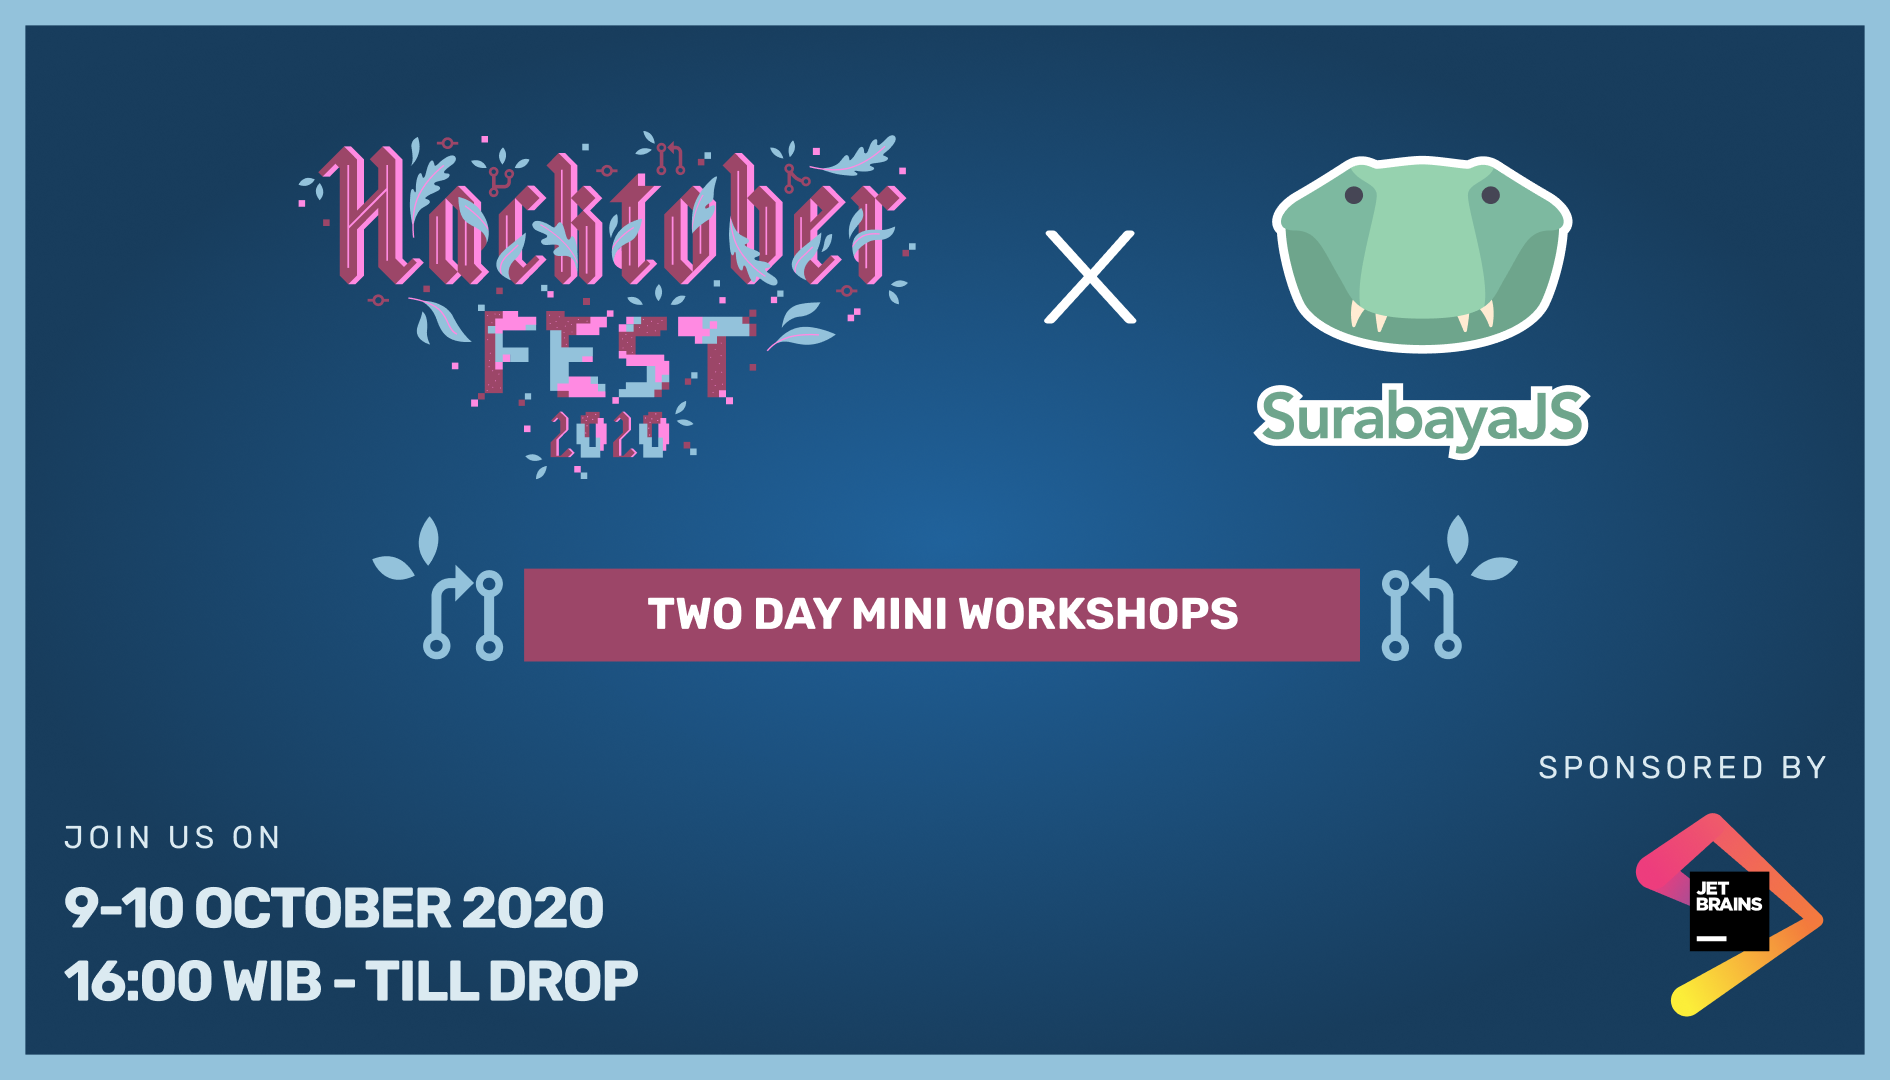 Hacktoberfest 2020 Mini Workshops